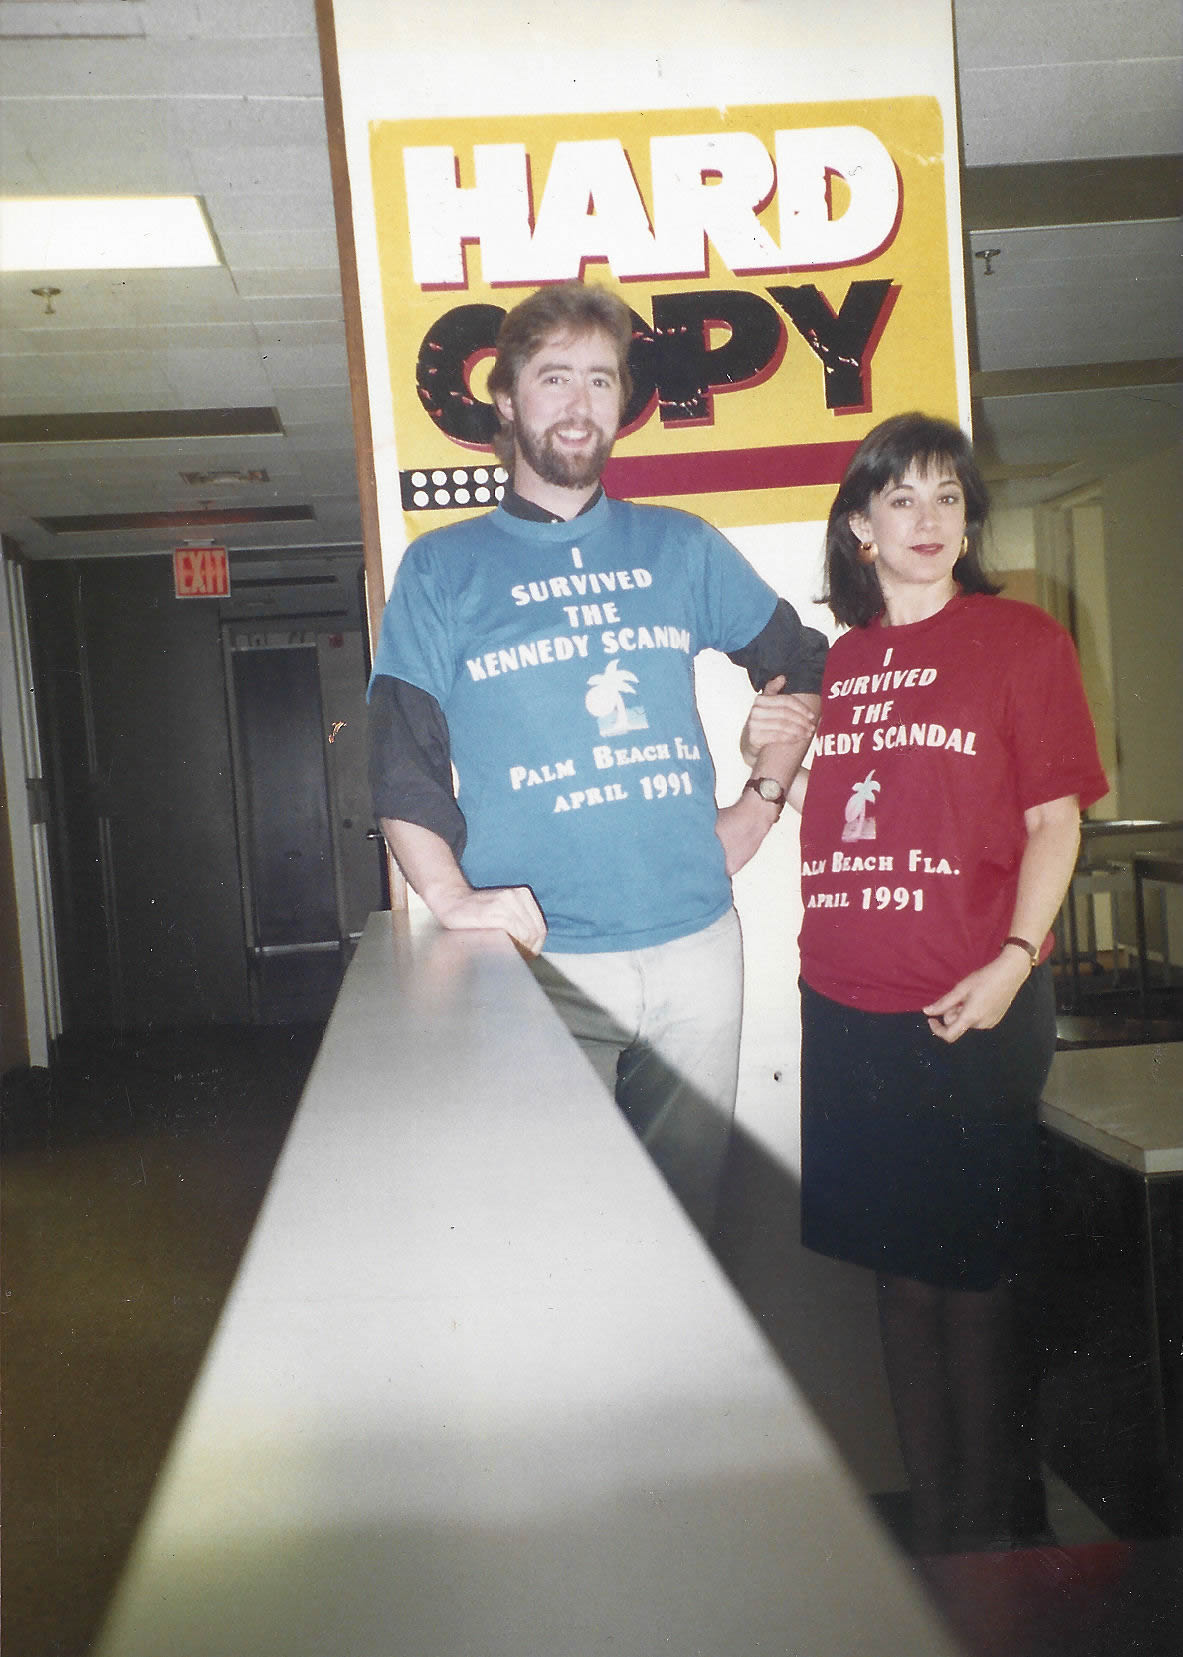 04 Diane and Producer Jerry Burke Broke the William Kennedy Smith Case for Hard Copy